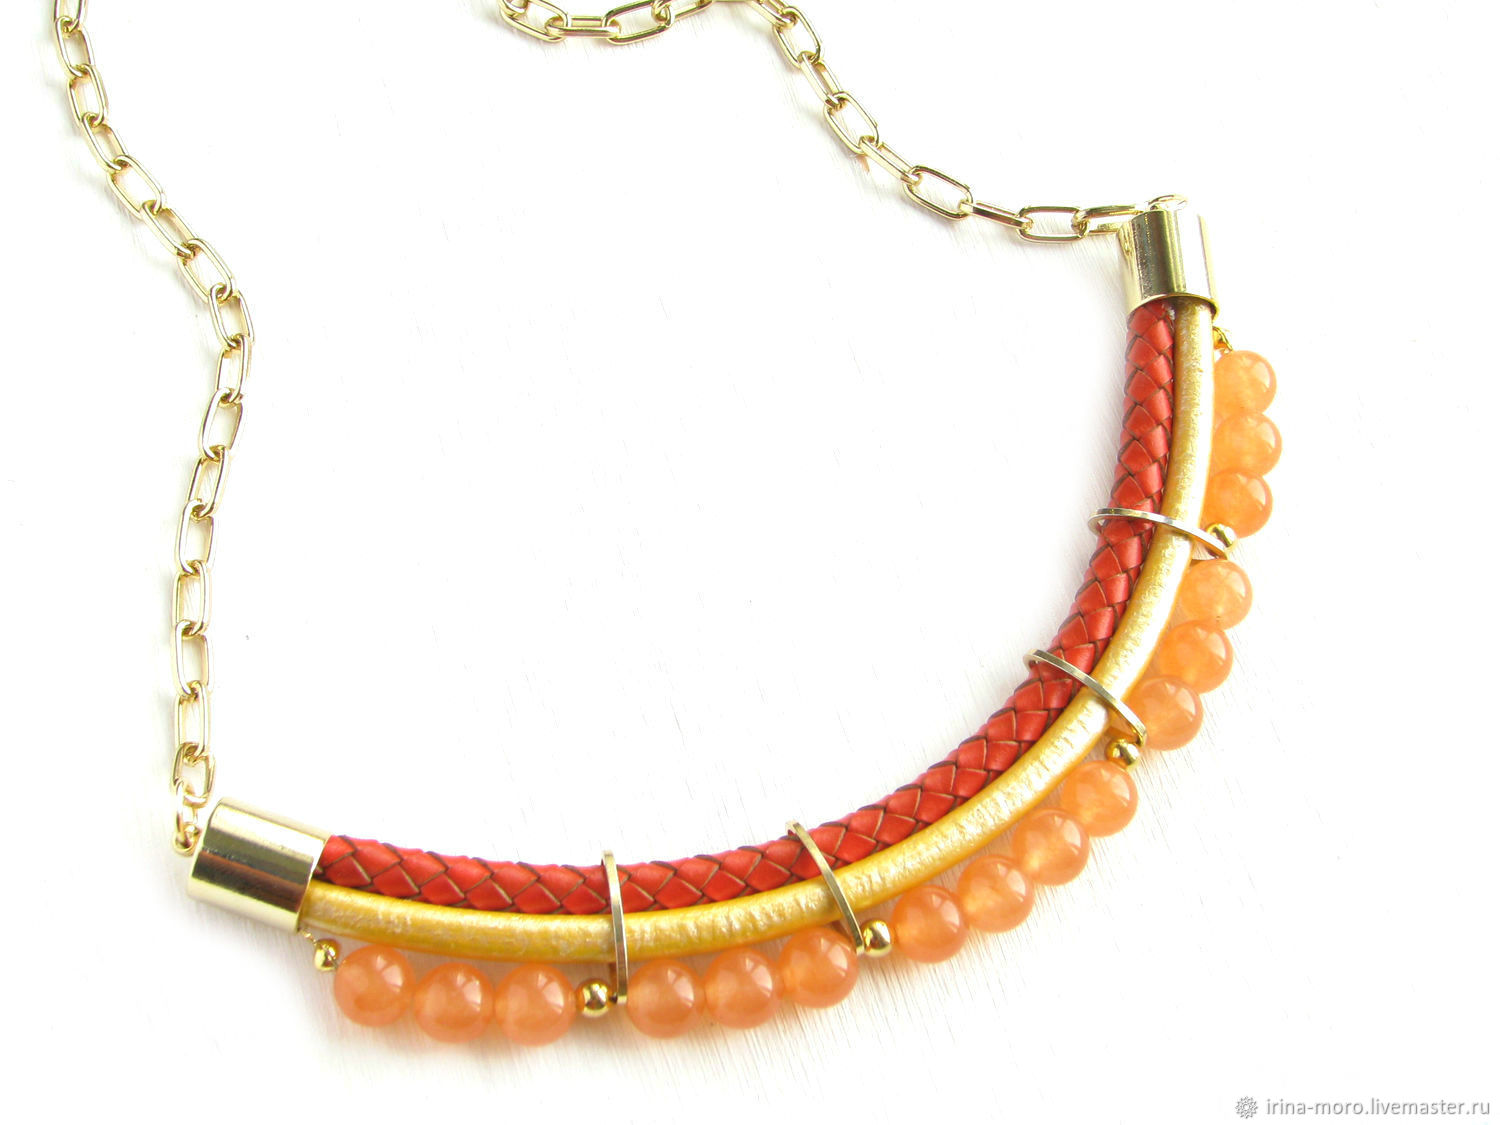 Citrus necklace leather necklace with agates Golden-orange, Necklace, Moscow,  Фото №1